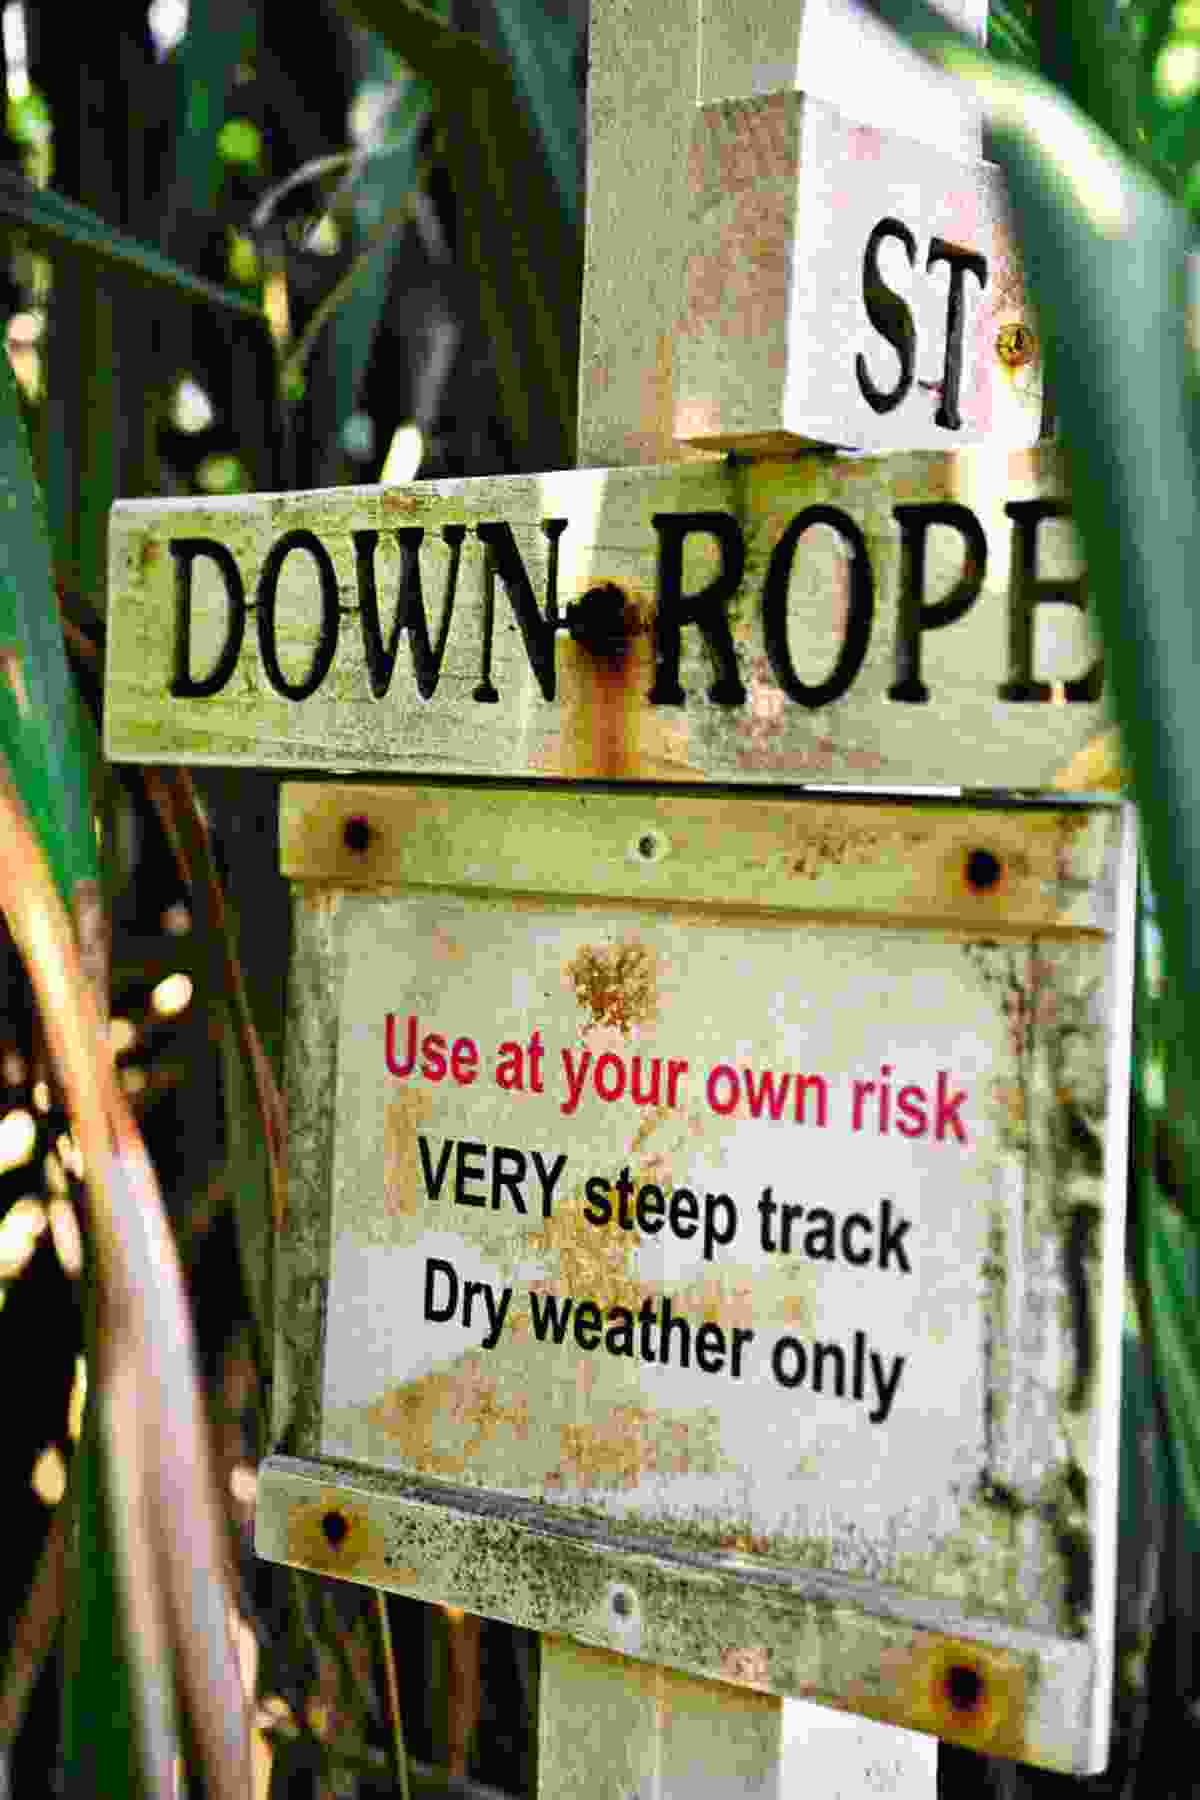 'Down Rope' sign (Mark Stratton)